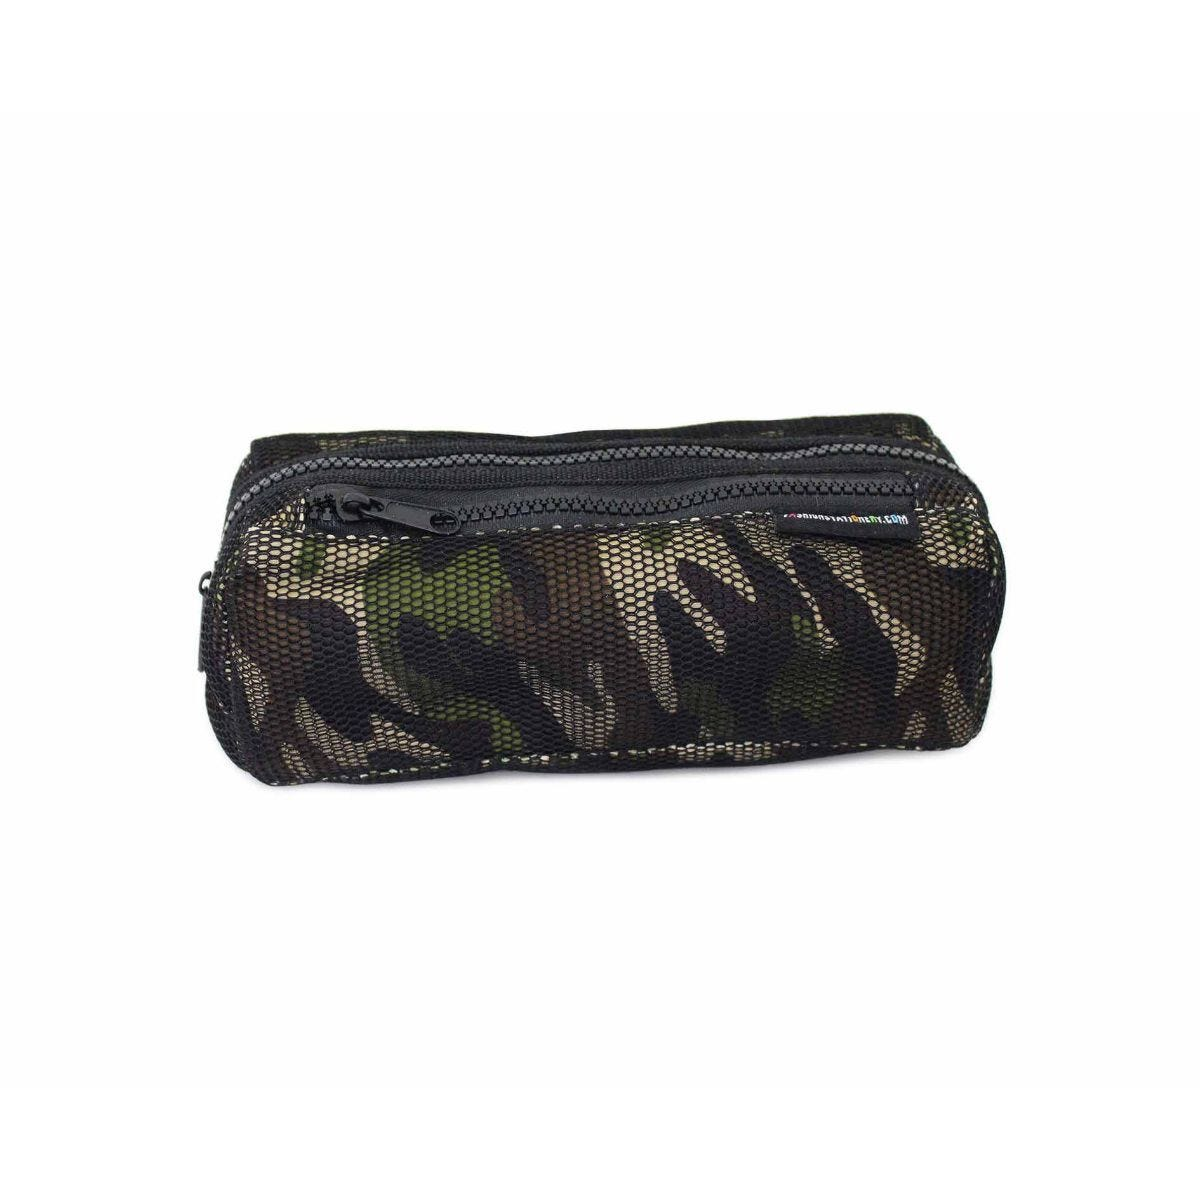 Mesh Camouflage Wedge Pencil Case Assorted